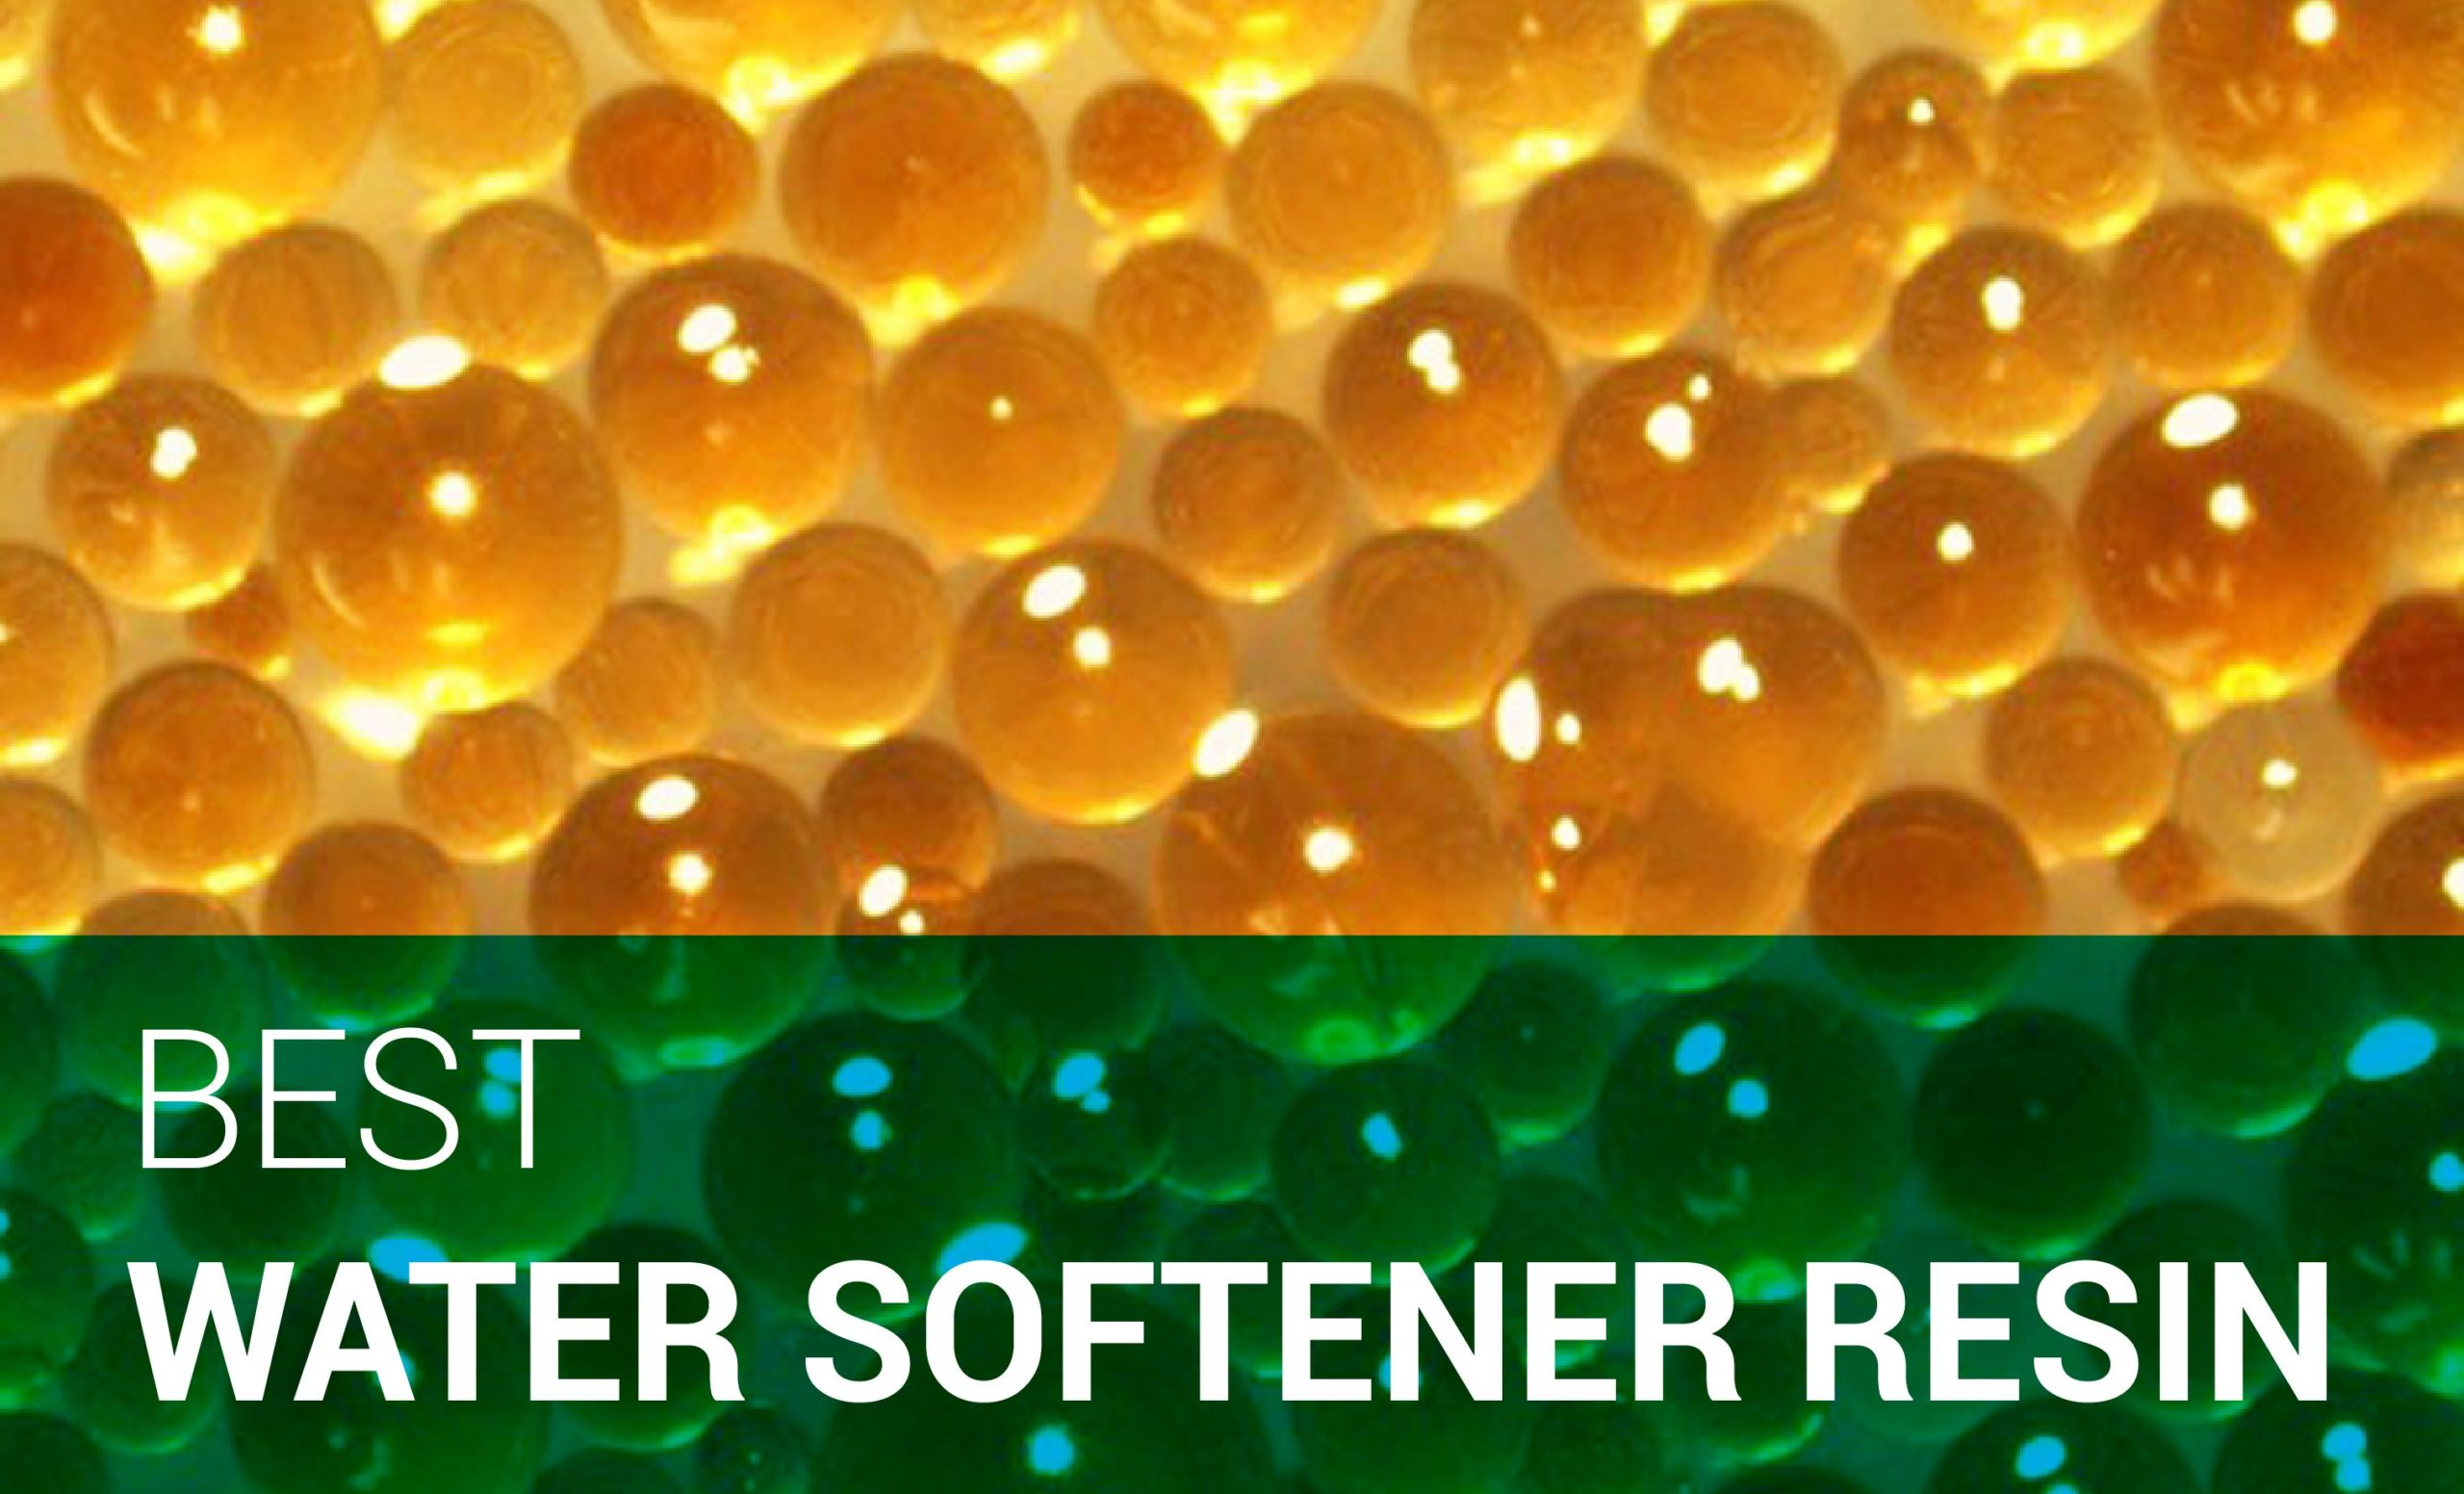 Best Water Softener Resin